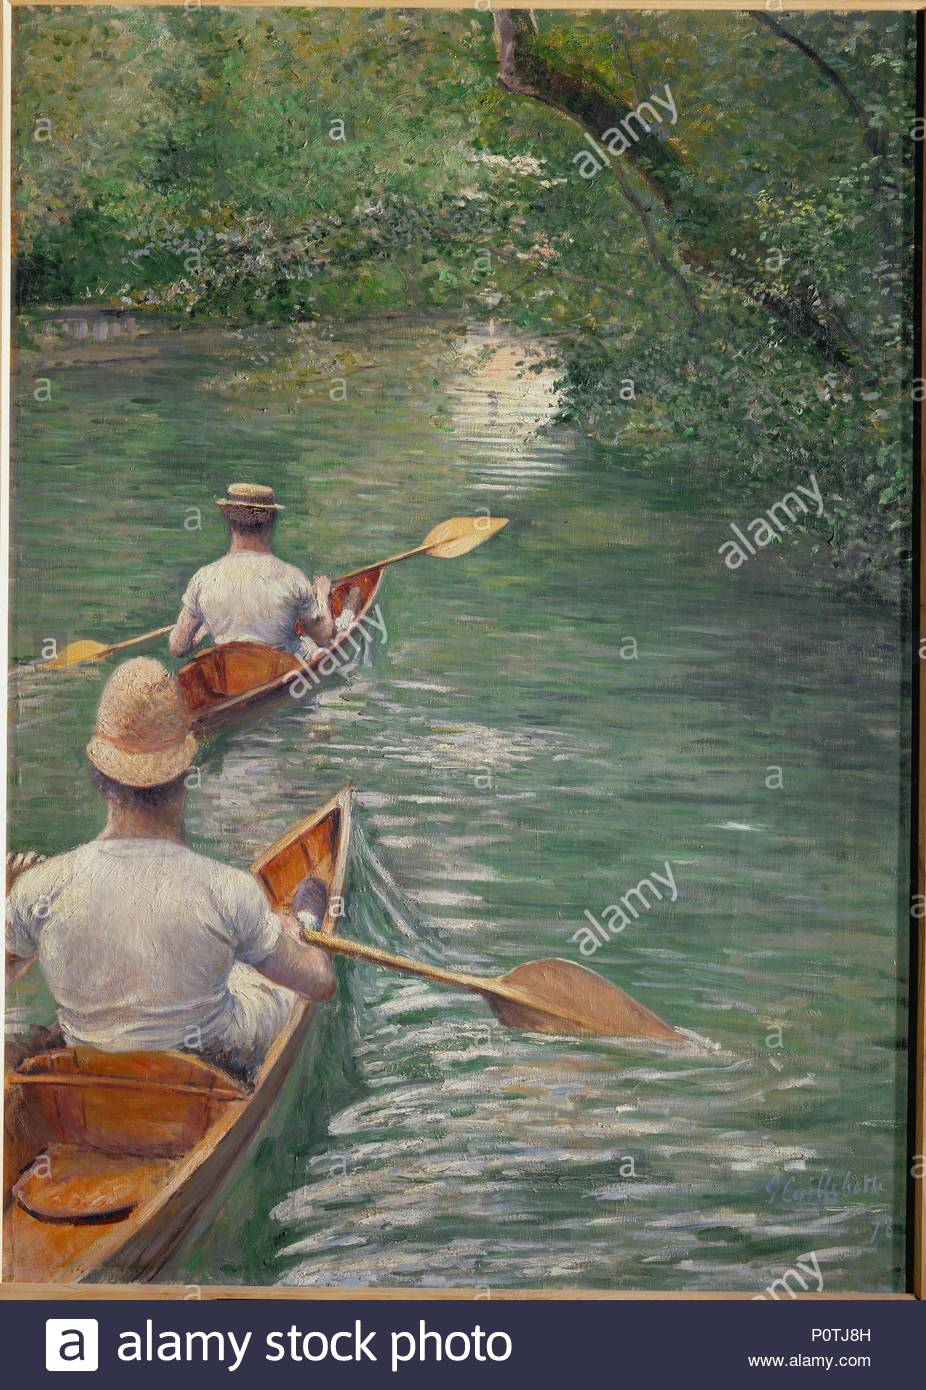 Perissoires-The canoes, 1878 Oil on canvas, 155 x 108 cm. Author: Gustave Caillebotte (1848-1894). Location: Musee des Beaux-Arts, Rennes, France. - Stock Image